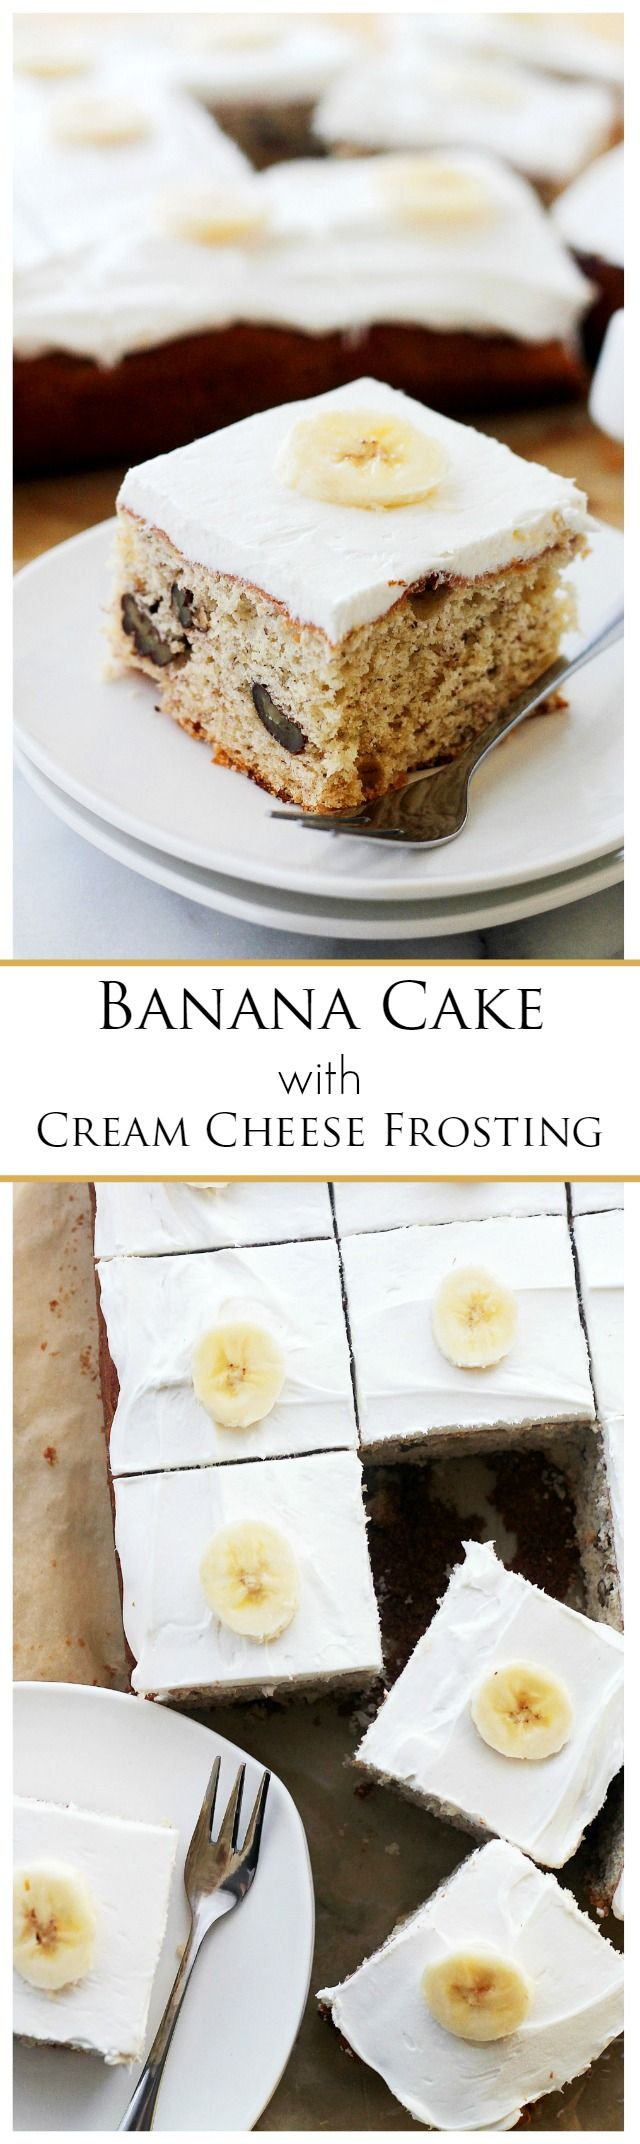 Banana Cake with Cream Cheese Frosting - Decadent, easy to make Banana Cake topped with a smooth Cream Cheese Frosting.